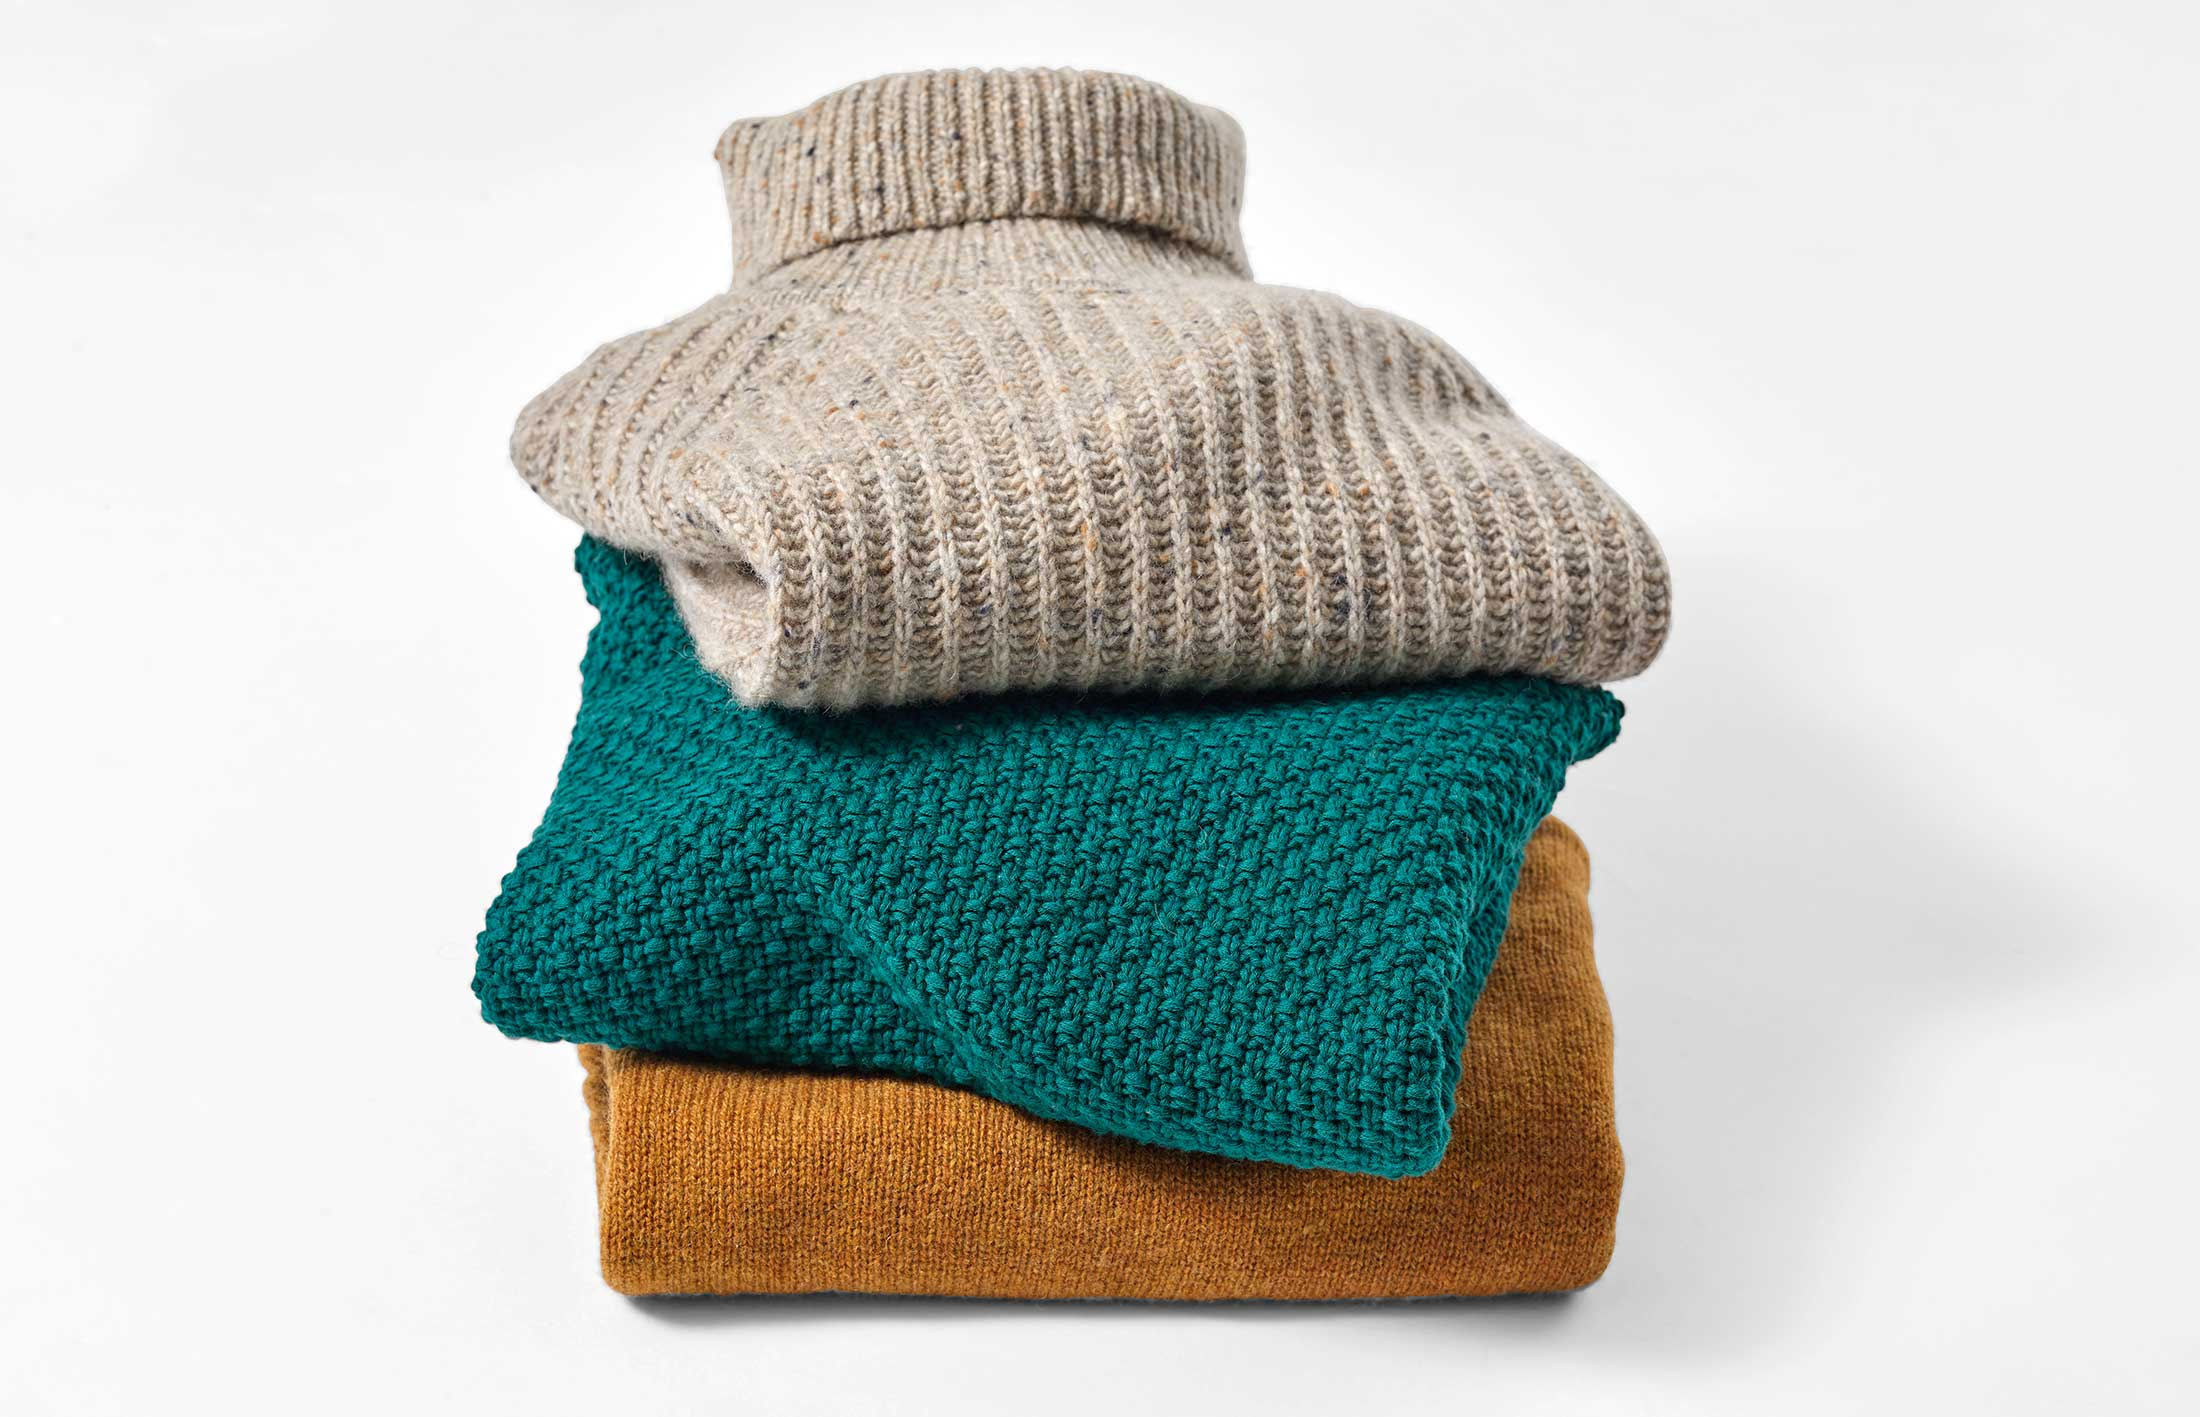 The autumn knitwear guide